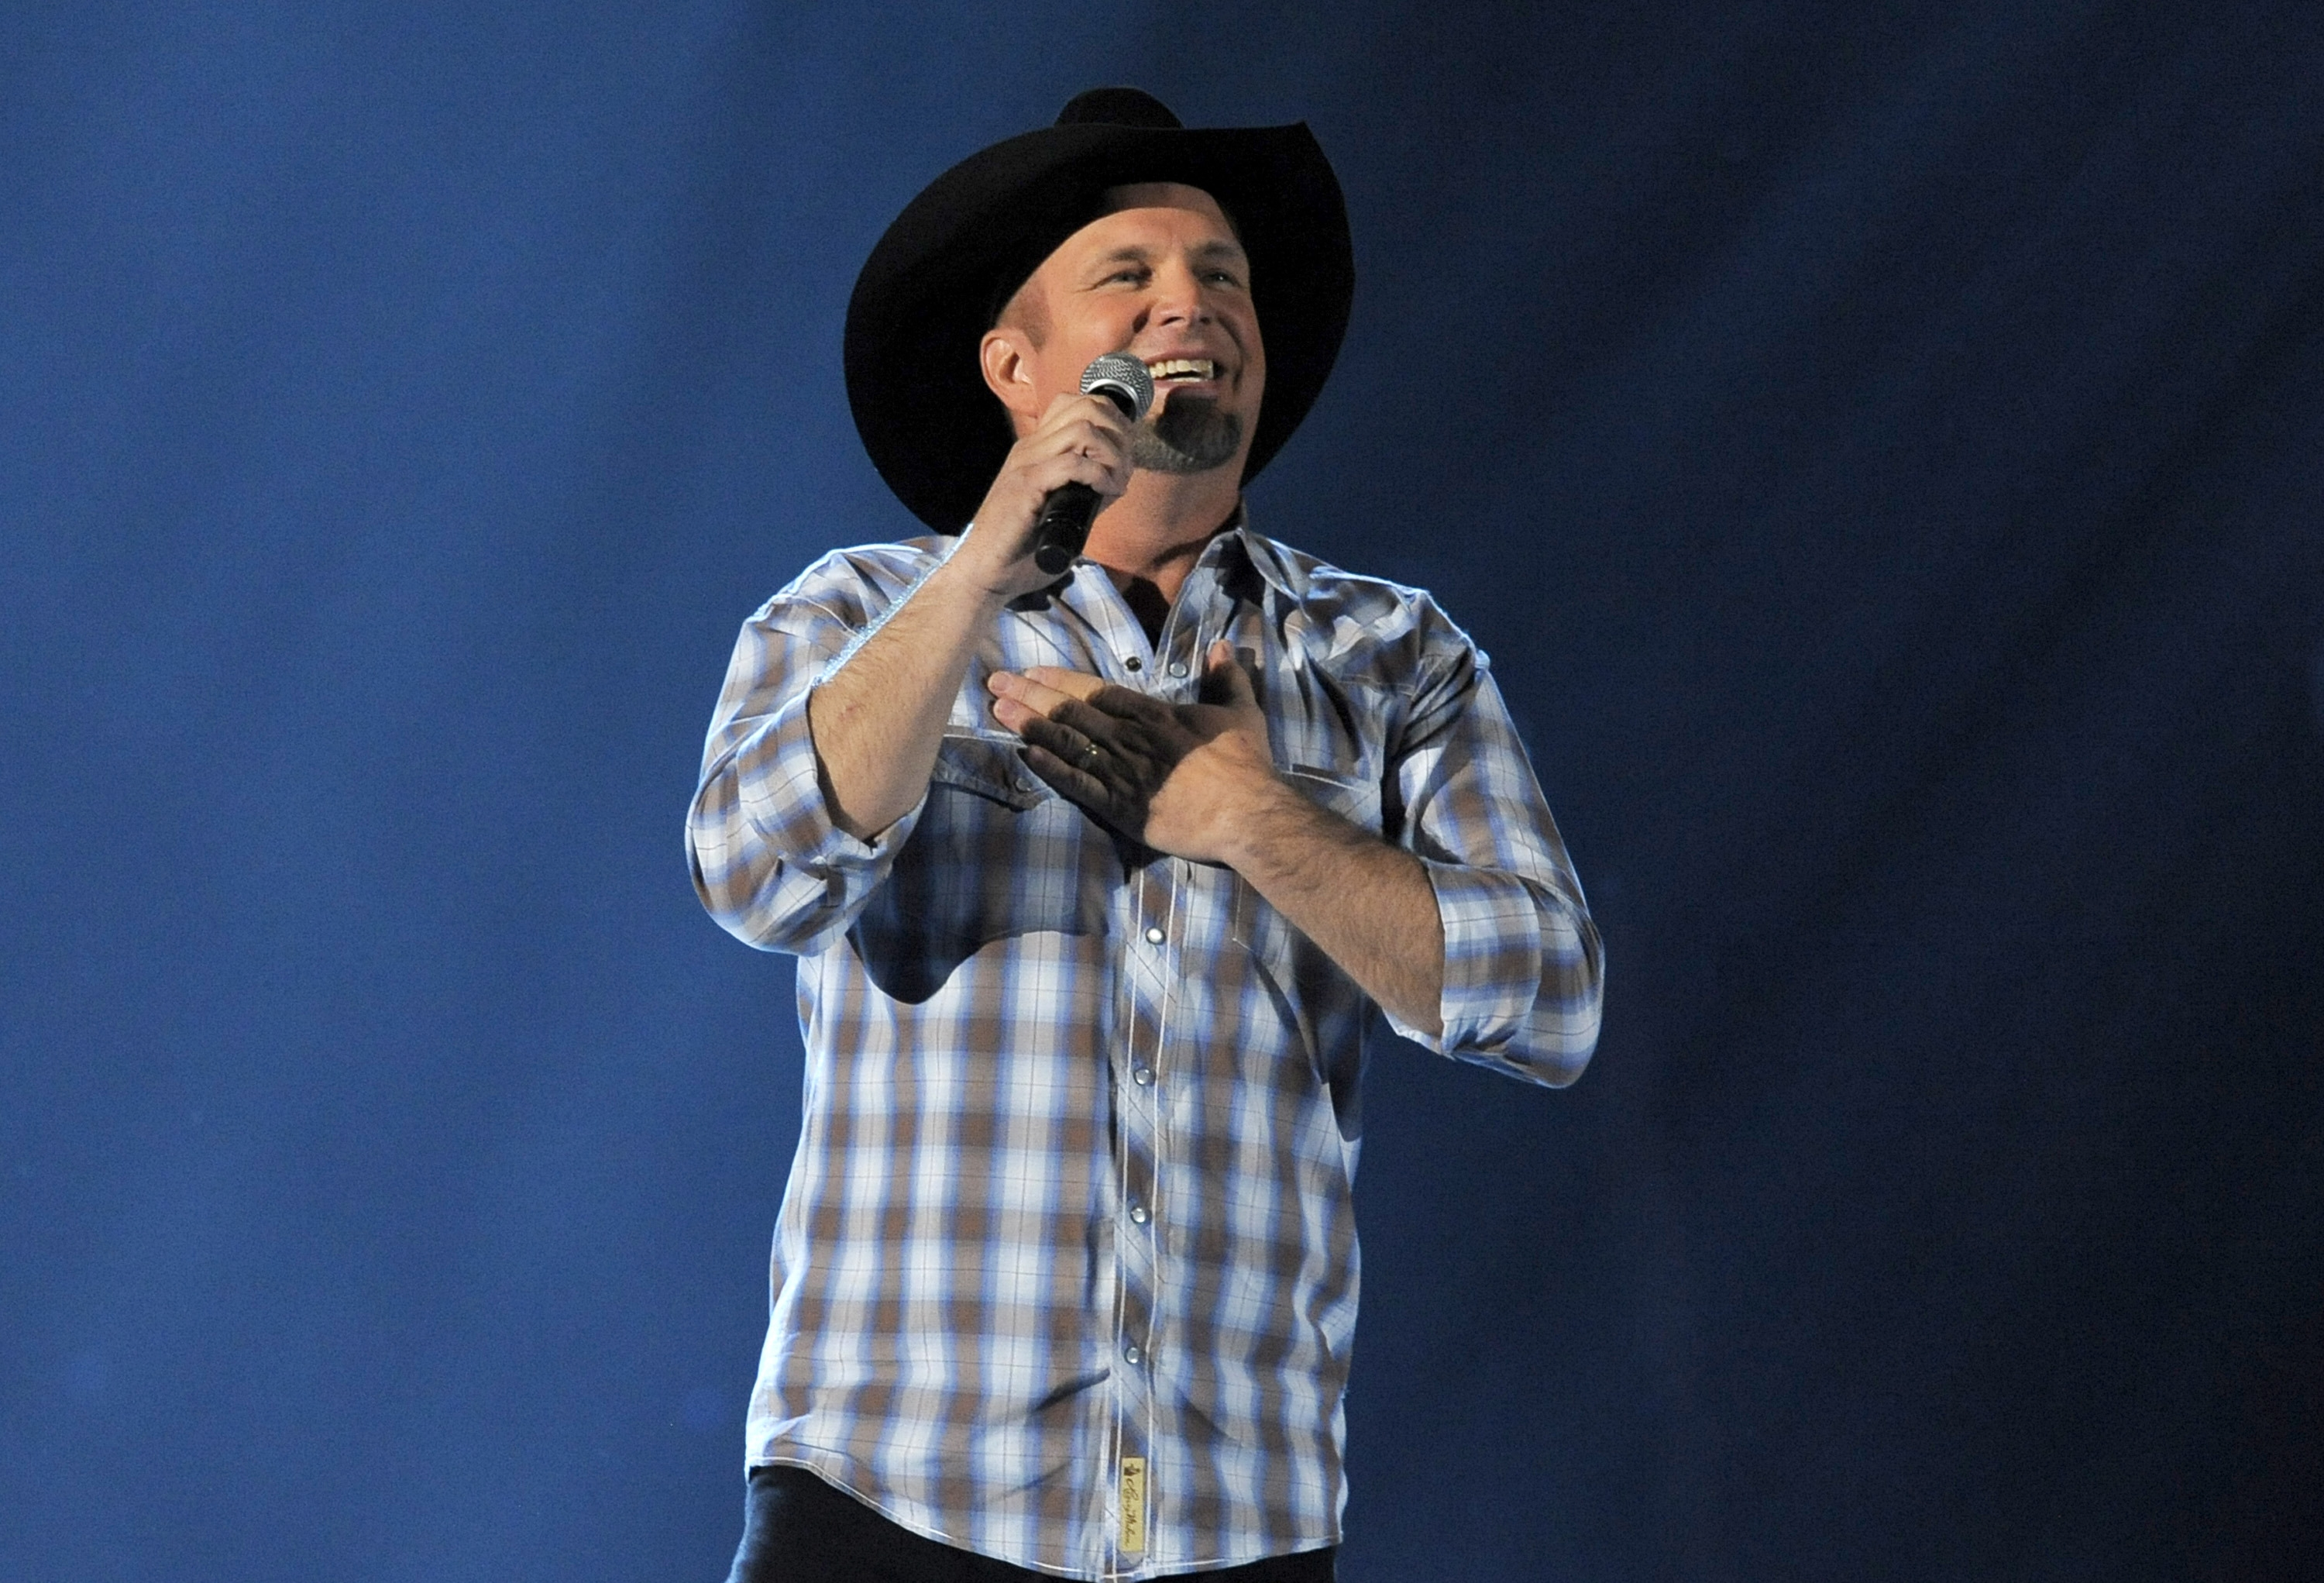 Garth Brooks performs recently in Las Vegas, Nev. Brooks will perform a rare live broadcast concert special from the Encore Theater at the Wynn Las Vegas on Friday, Nov. 29.